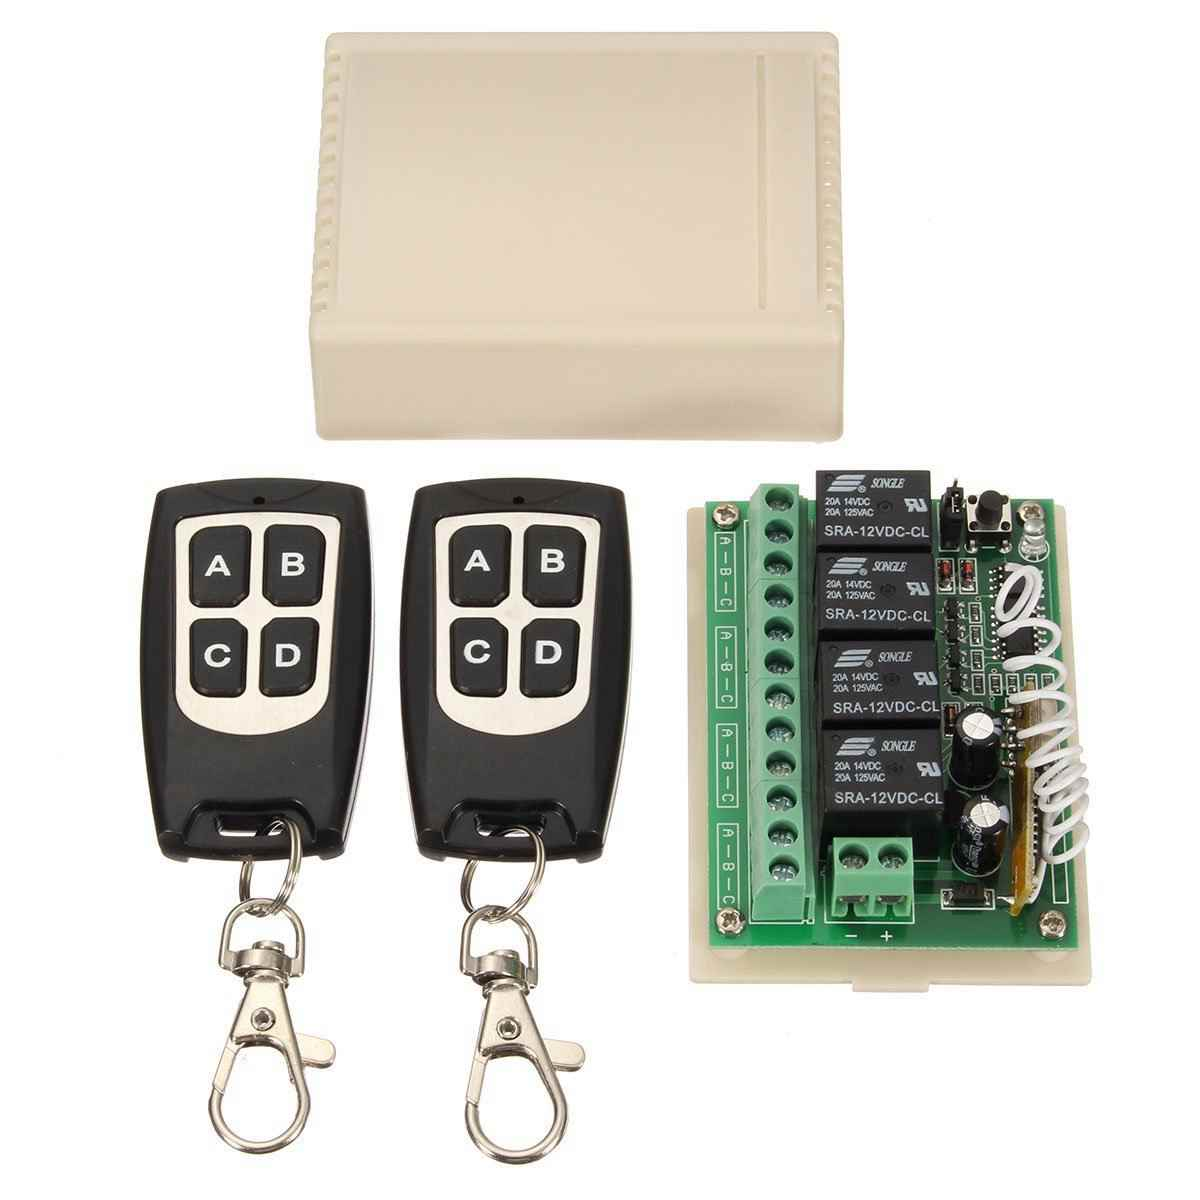 12V 4CH Channel 433Mhz Wireless Remote Control Switch Integrated Circuit  With 2 Transmitter DIY Replace Parts Tool Kits